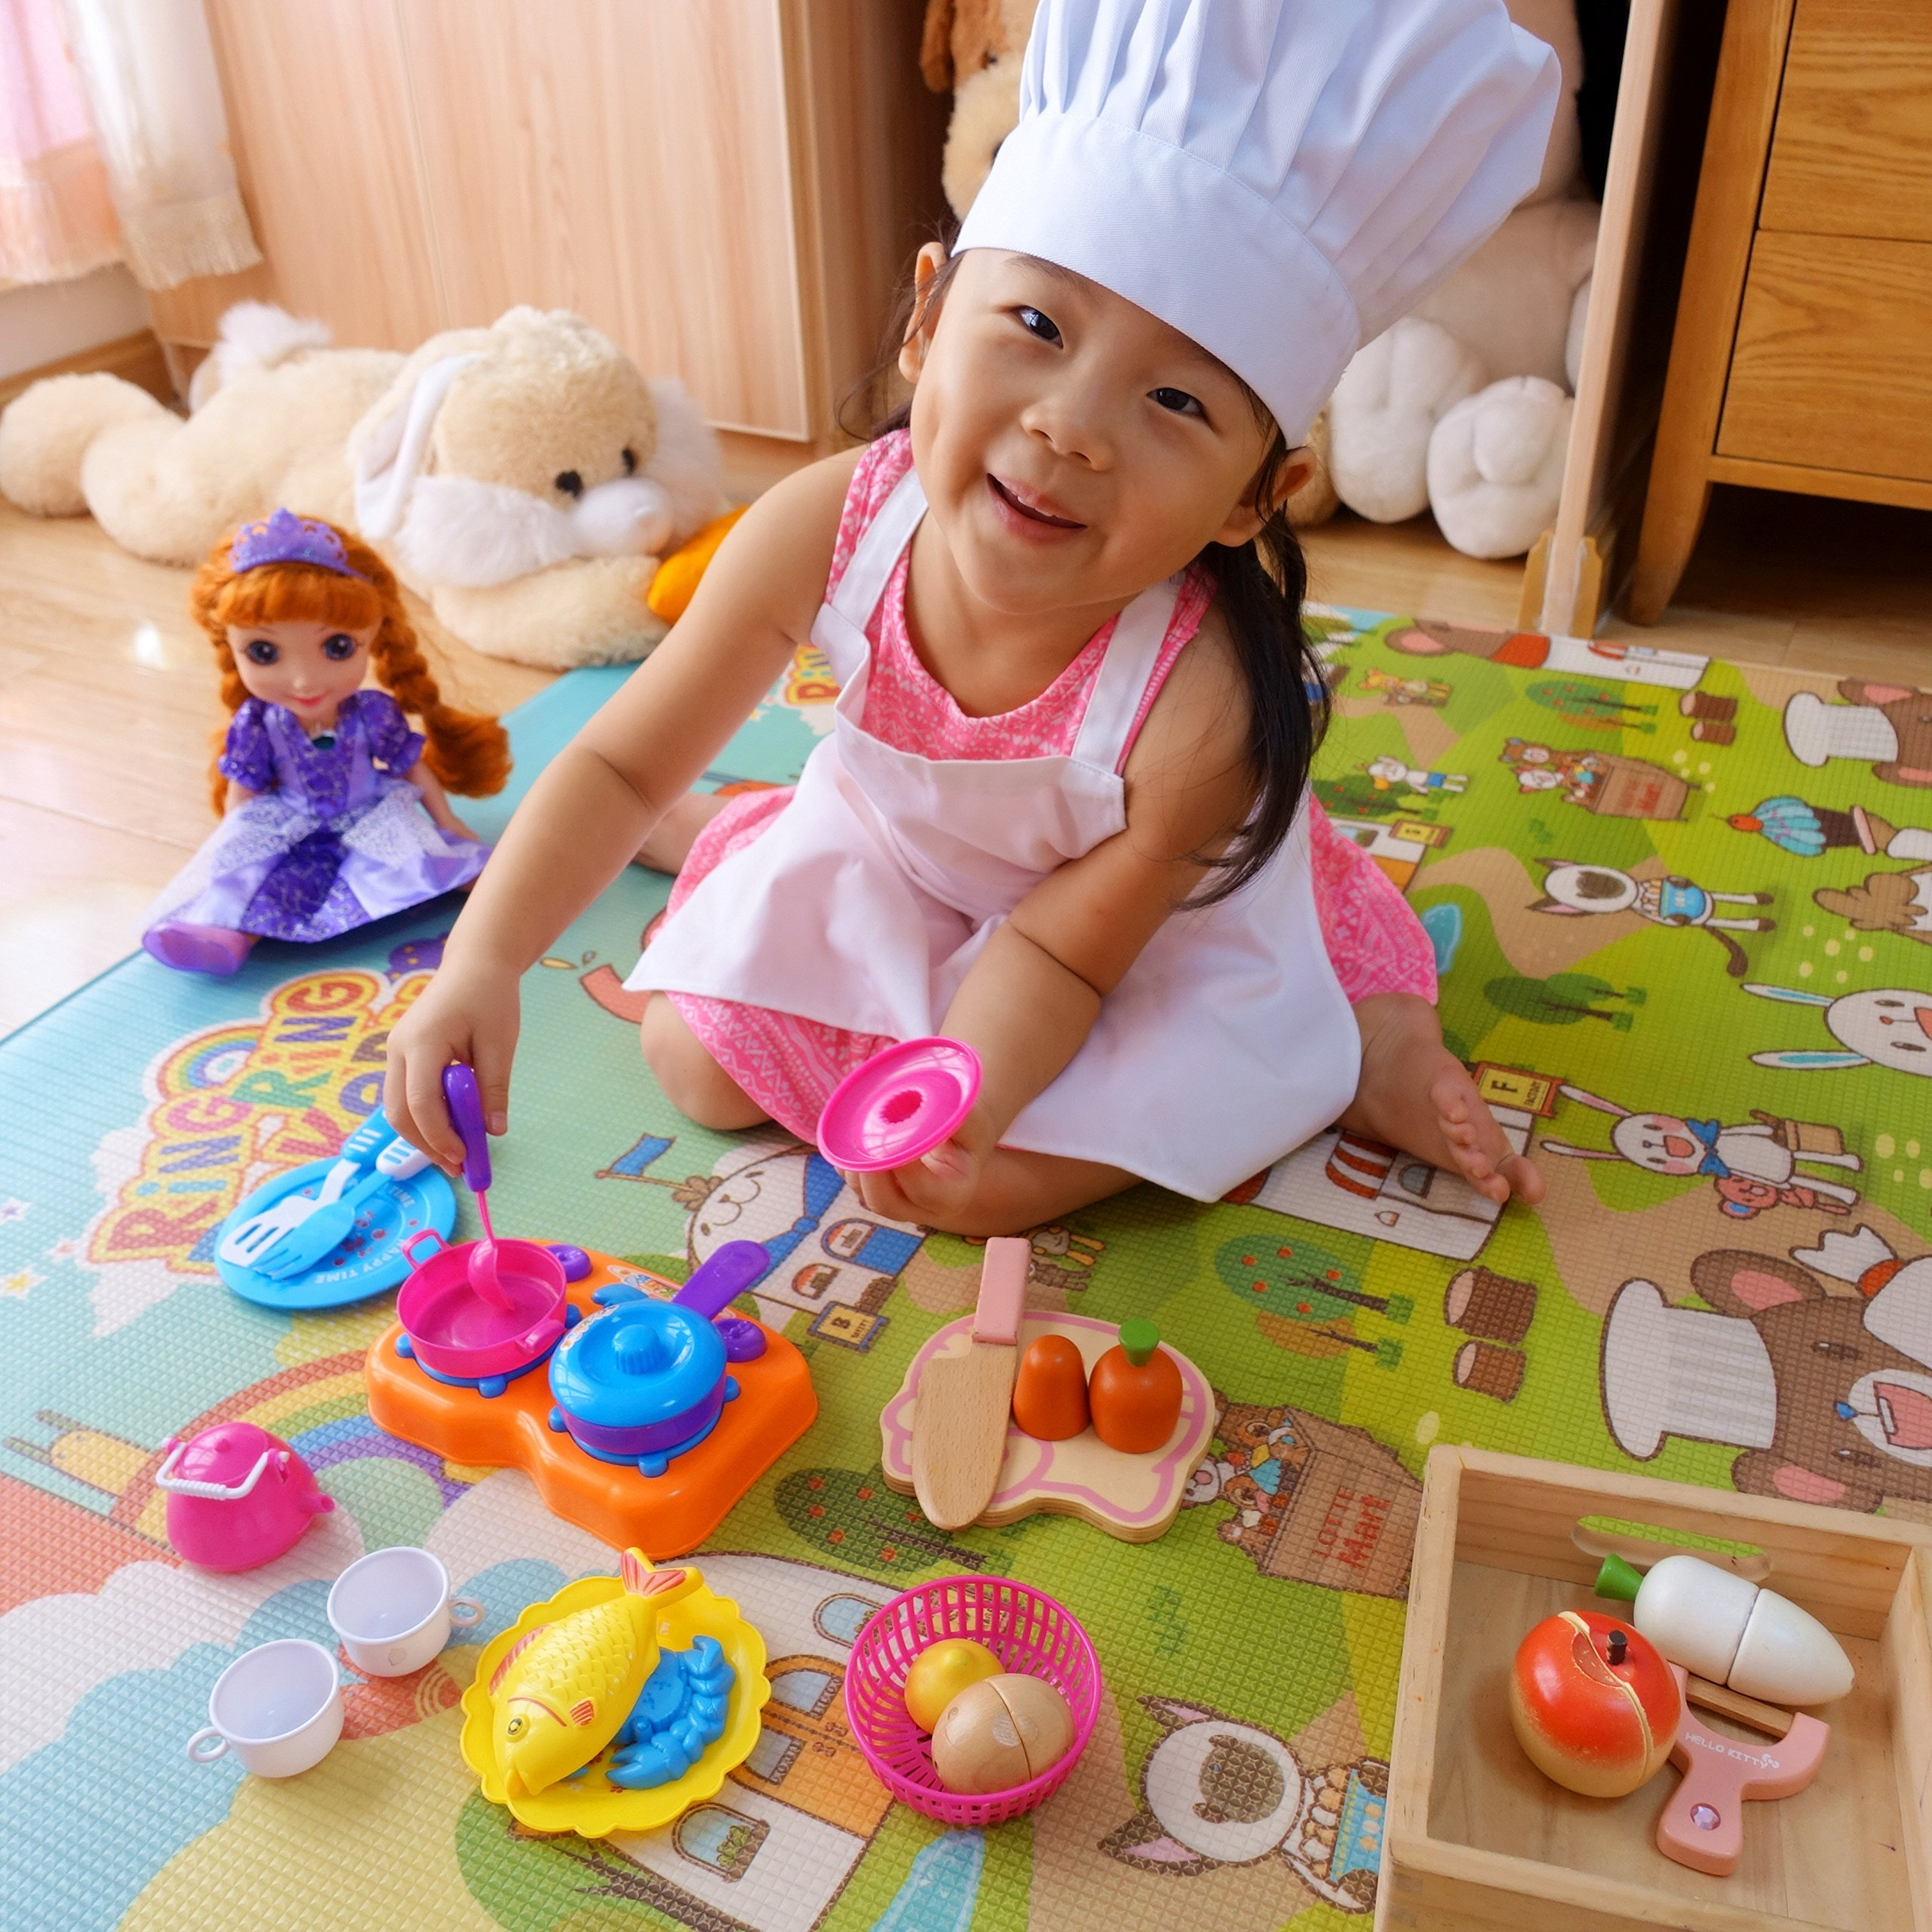 2 Pc-White kids'chef apron and hat set for cooking,baking,painting or decorating party (1-3Years) by MULAN (Image #6)